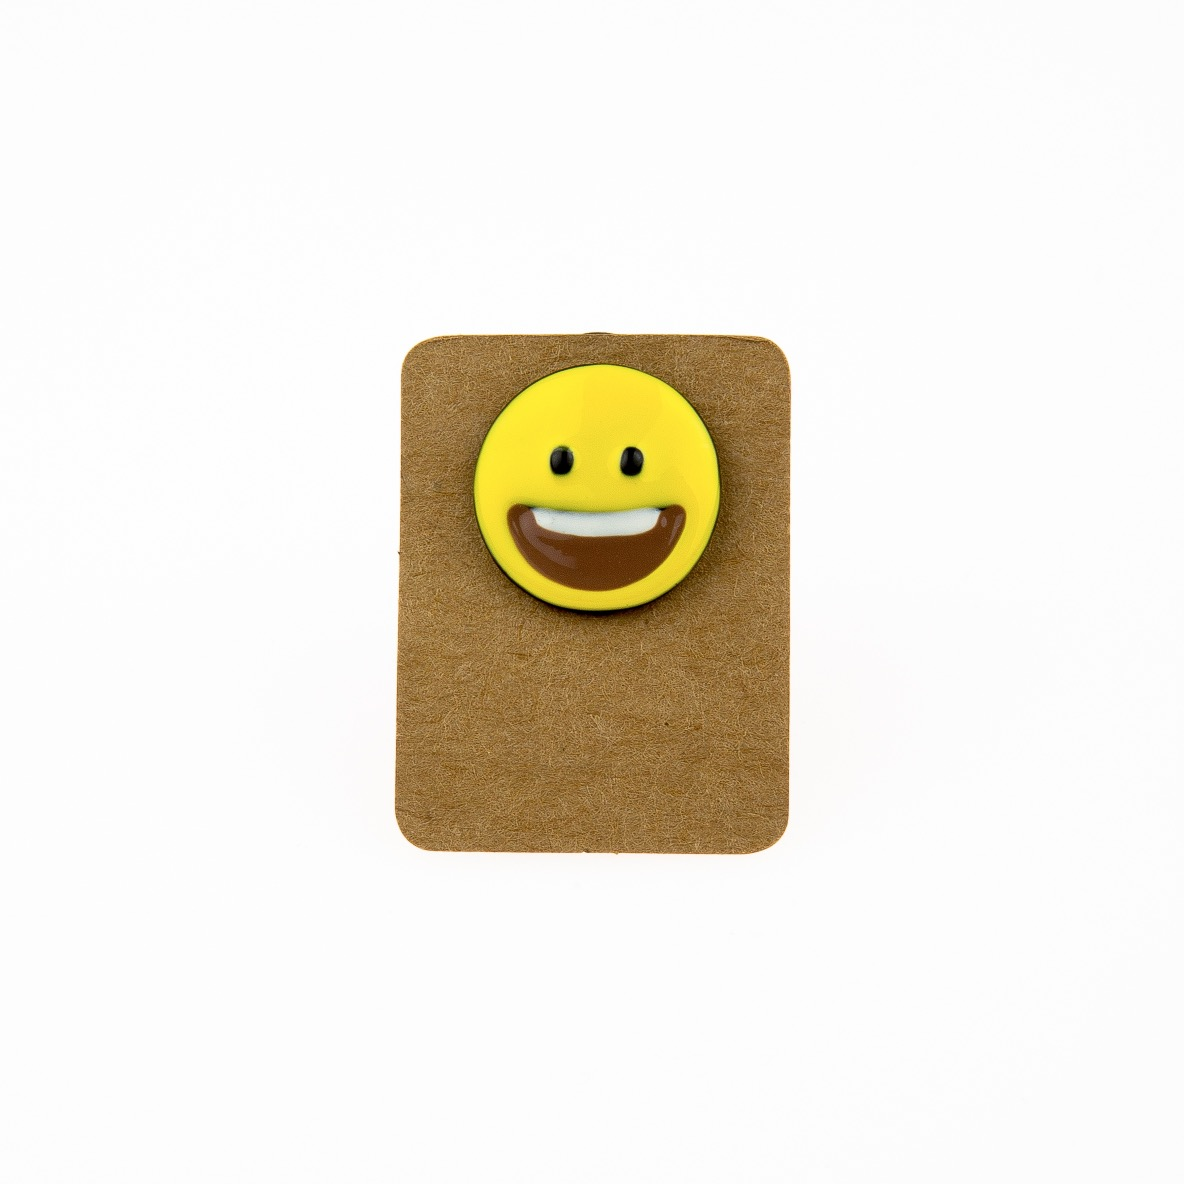 Metal Emoji Smiley Face Enamel Pin Badge